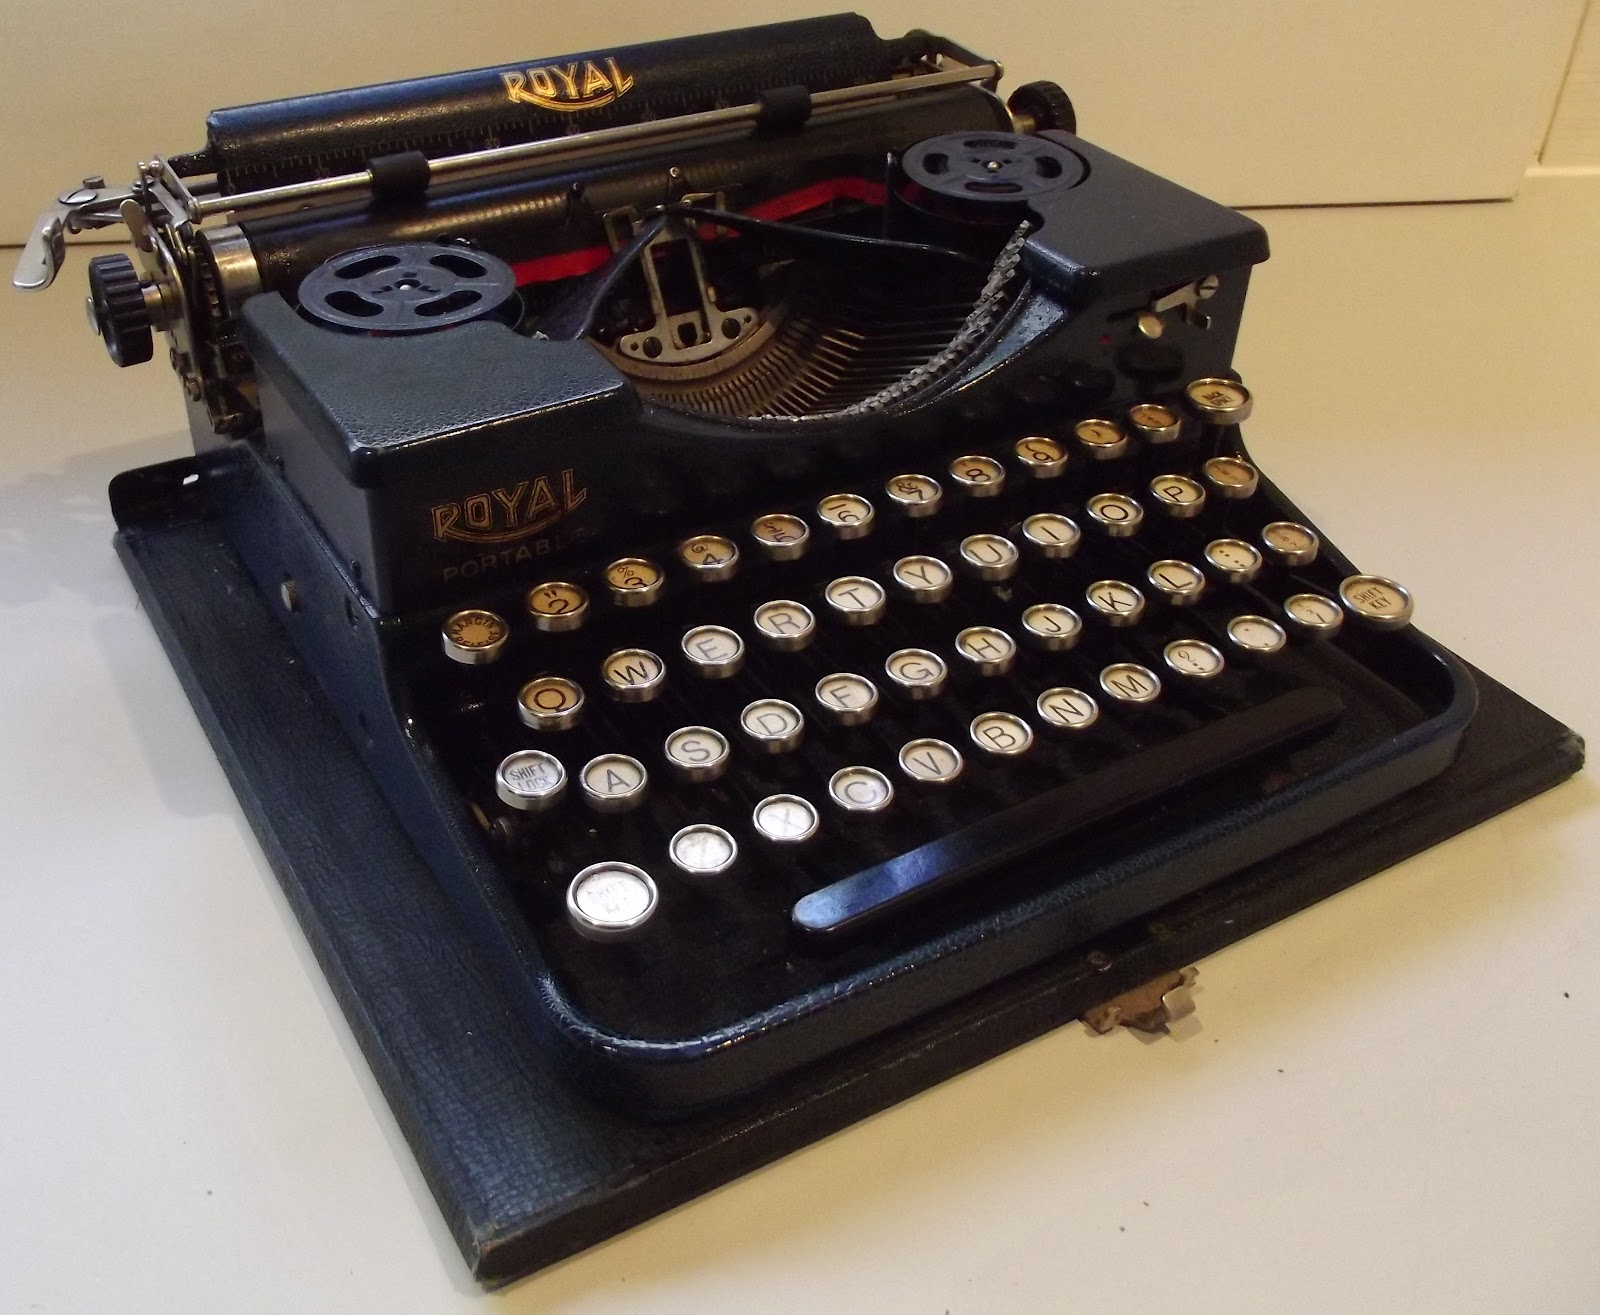 Vintage Royal Portable Typewriter Part - 16: Royalu0027s First Portable Typewriter Was Launched In September 1926. It  Entered An Already Fiercely Competitive Marketplace, Which Had Been  Dominated For The ...